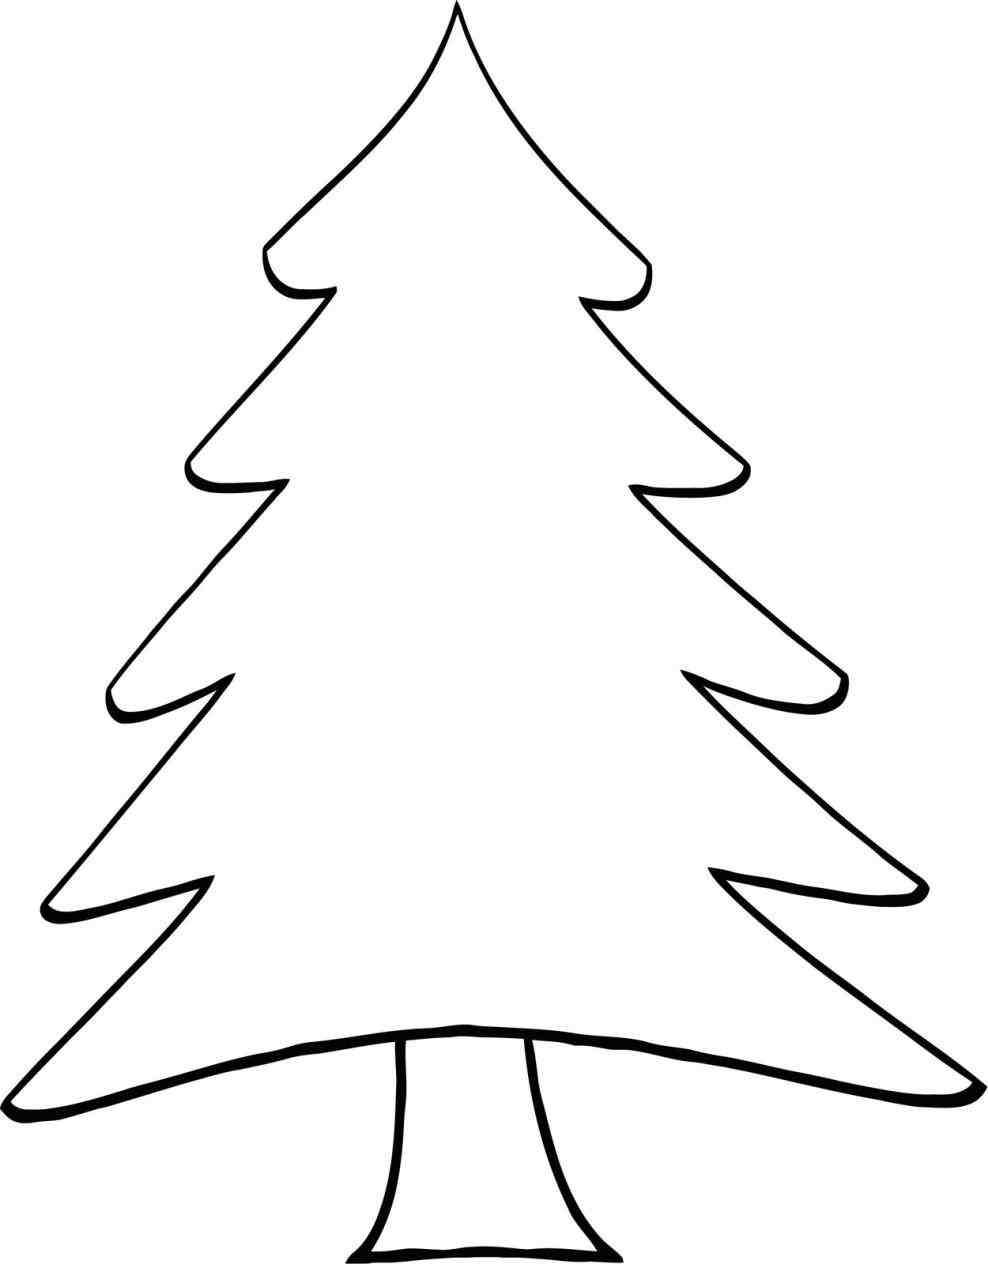 Pine Tree Drawing - ClipArt Best